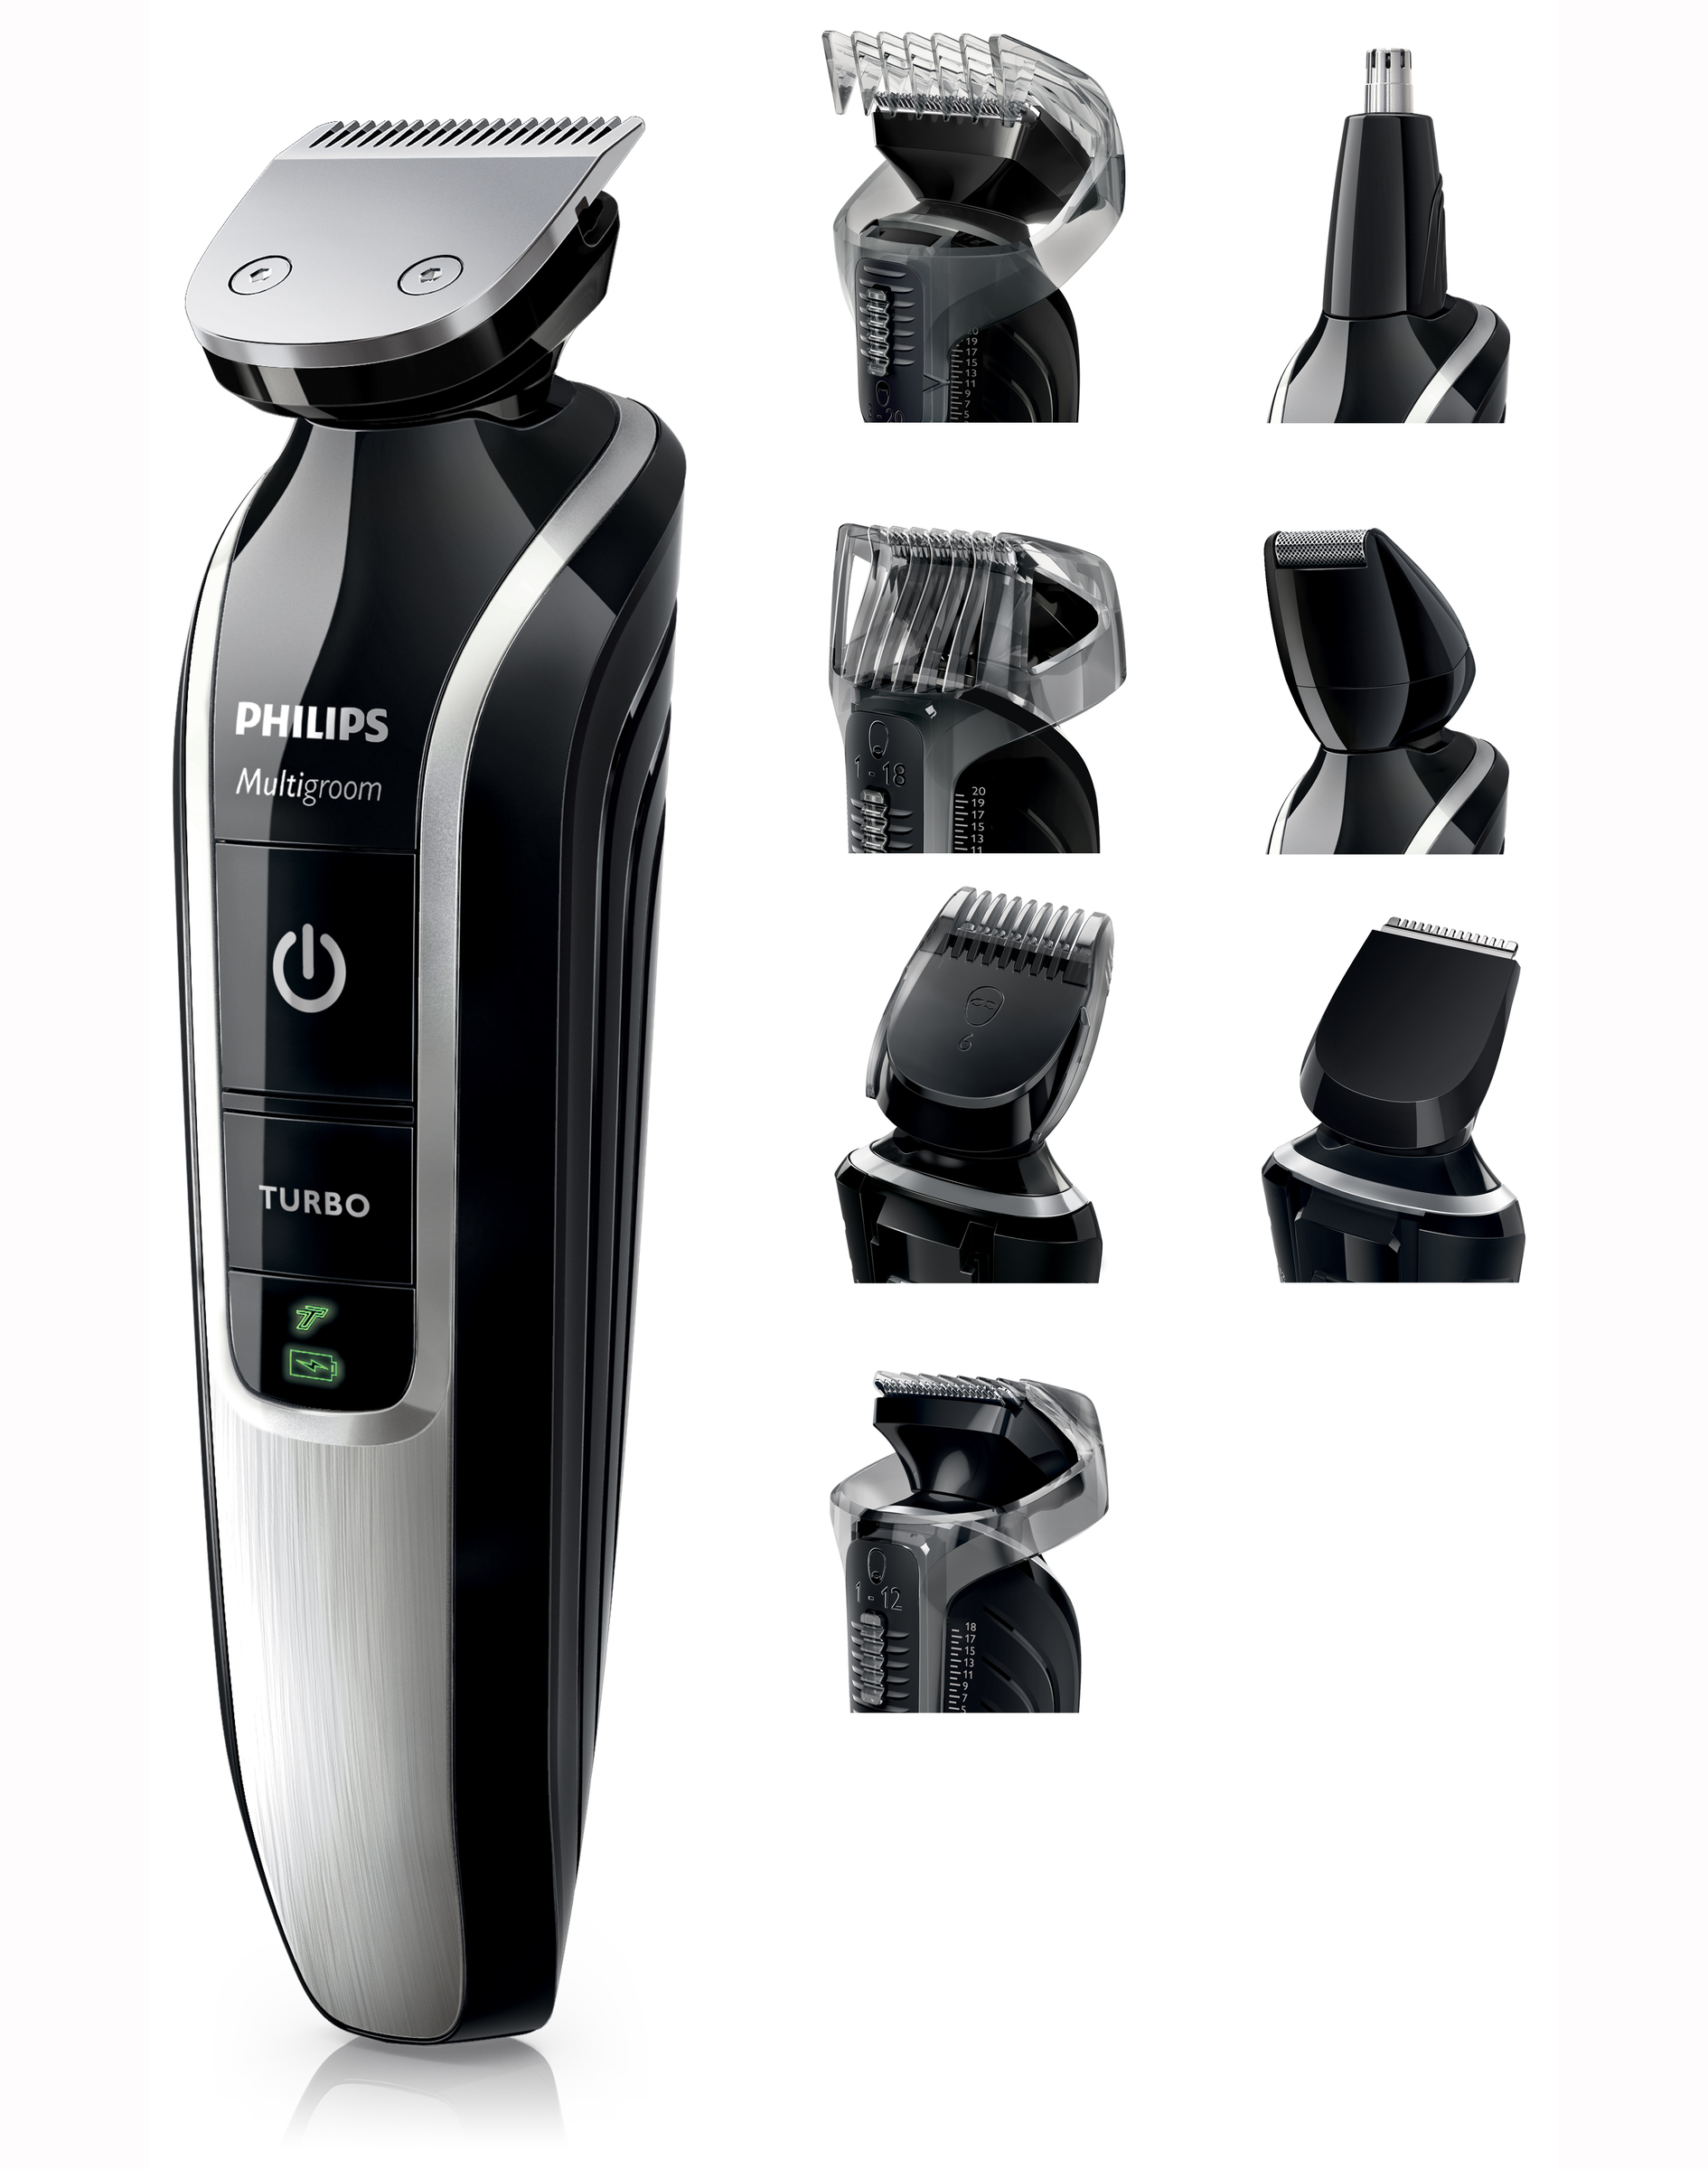 philips multigroom series 5000 8 in 1 head to toe trimmer. Black Bedroom Furniture Sets. Home Design Ideas